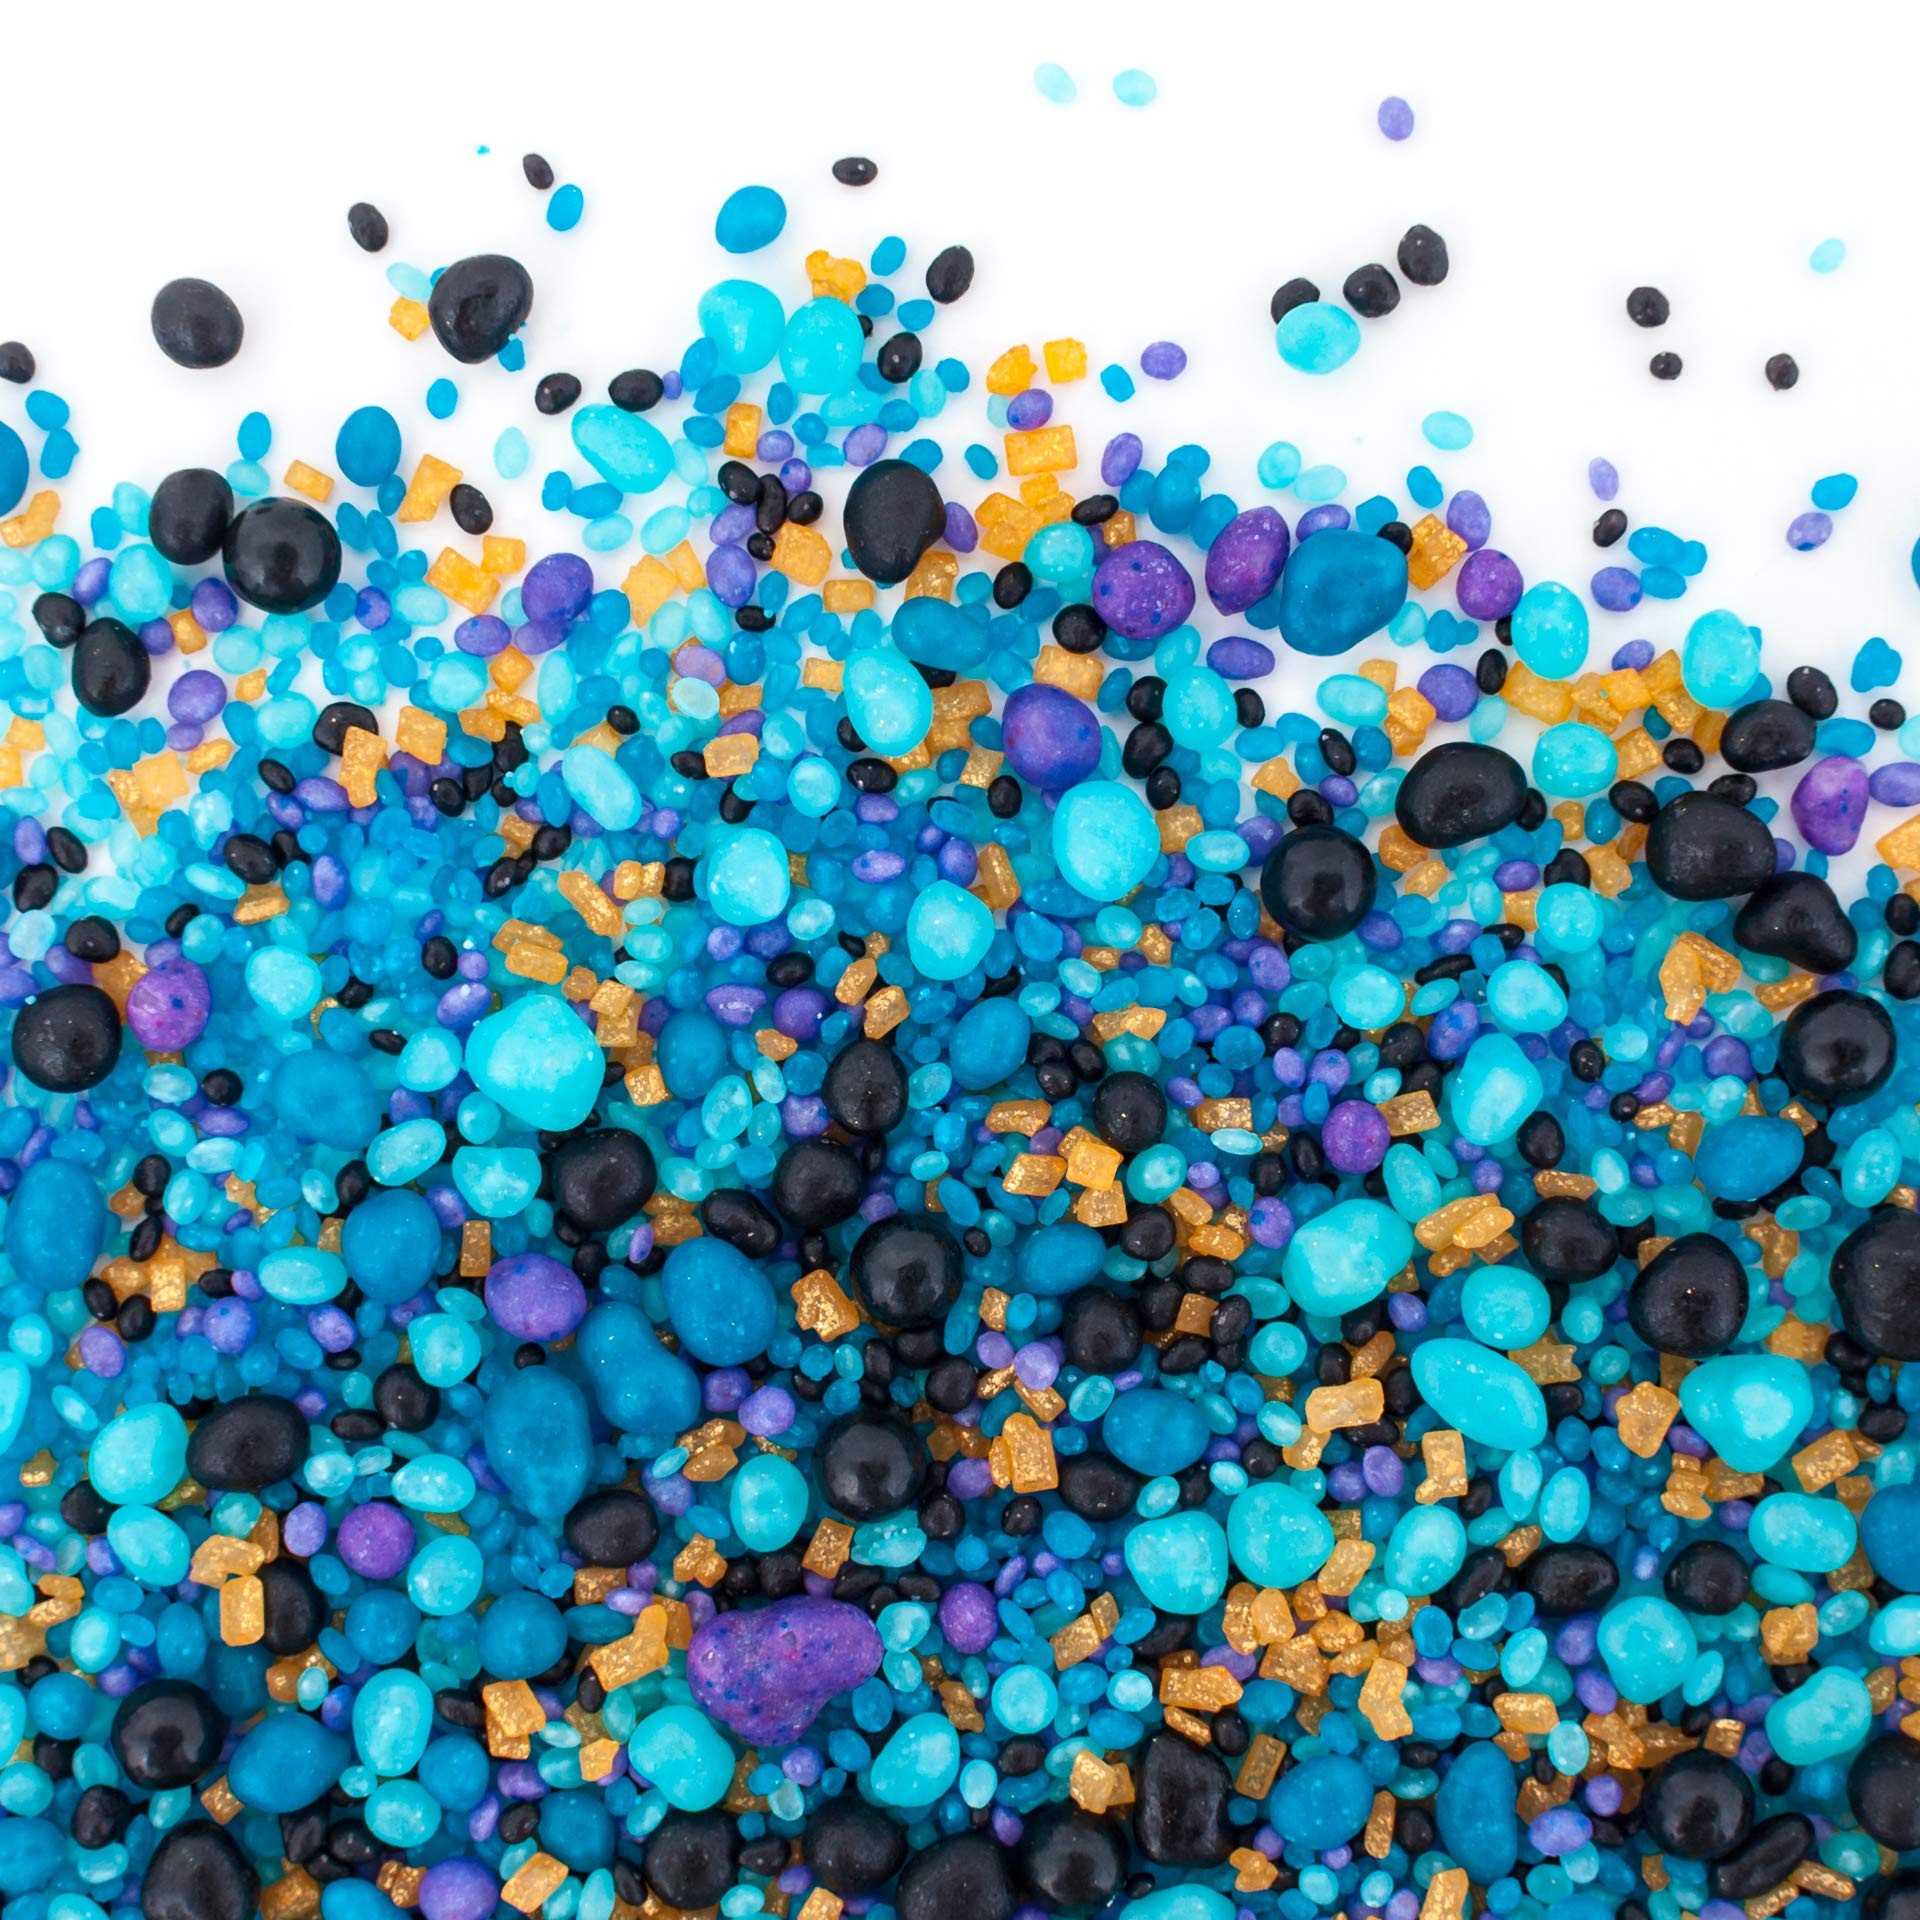 Flavored Candy Sprinkles | STEAMPUNK 8oz | Made From Candy! | Gluten Free. Nut Free. Dairy Free. | Black Cherry. Fruit Punch. Wild Berry. Blue Raspberry.